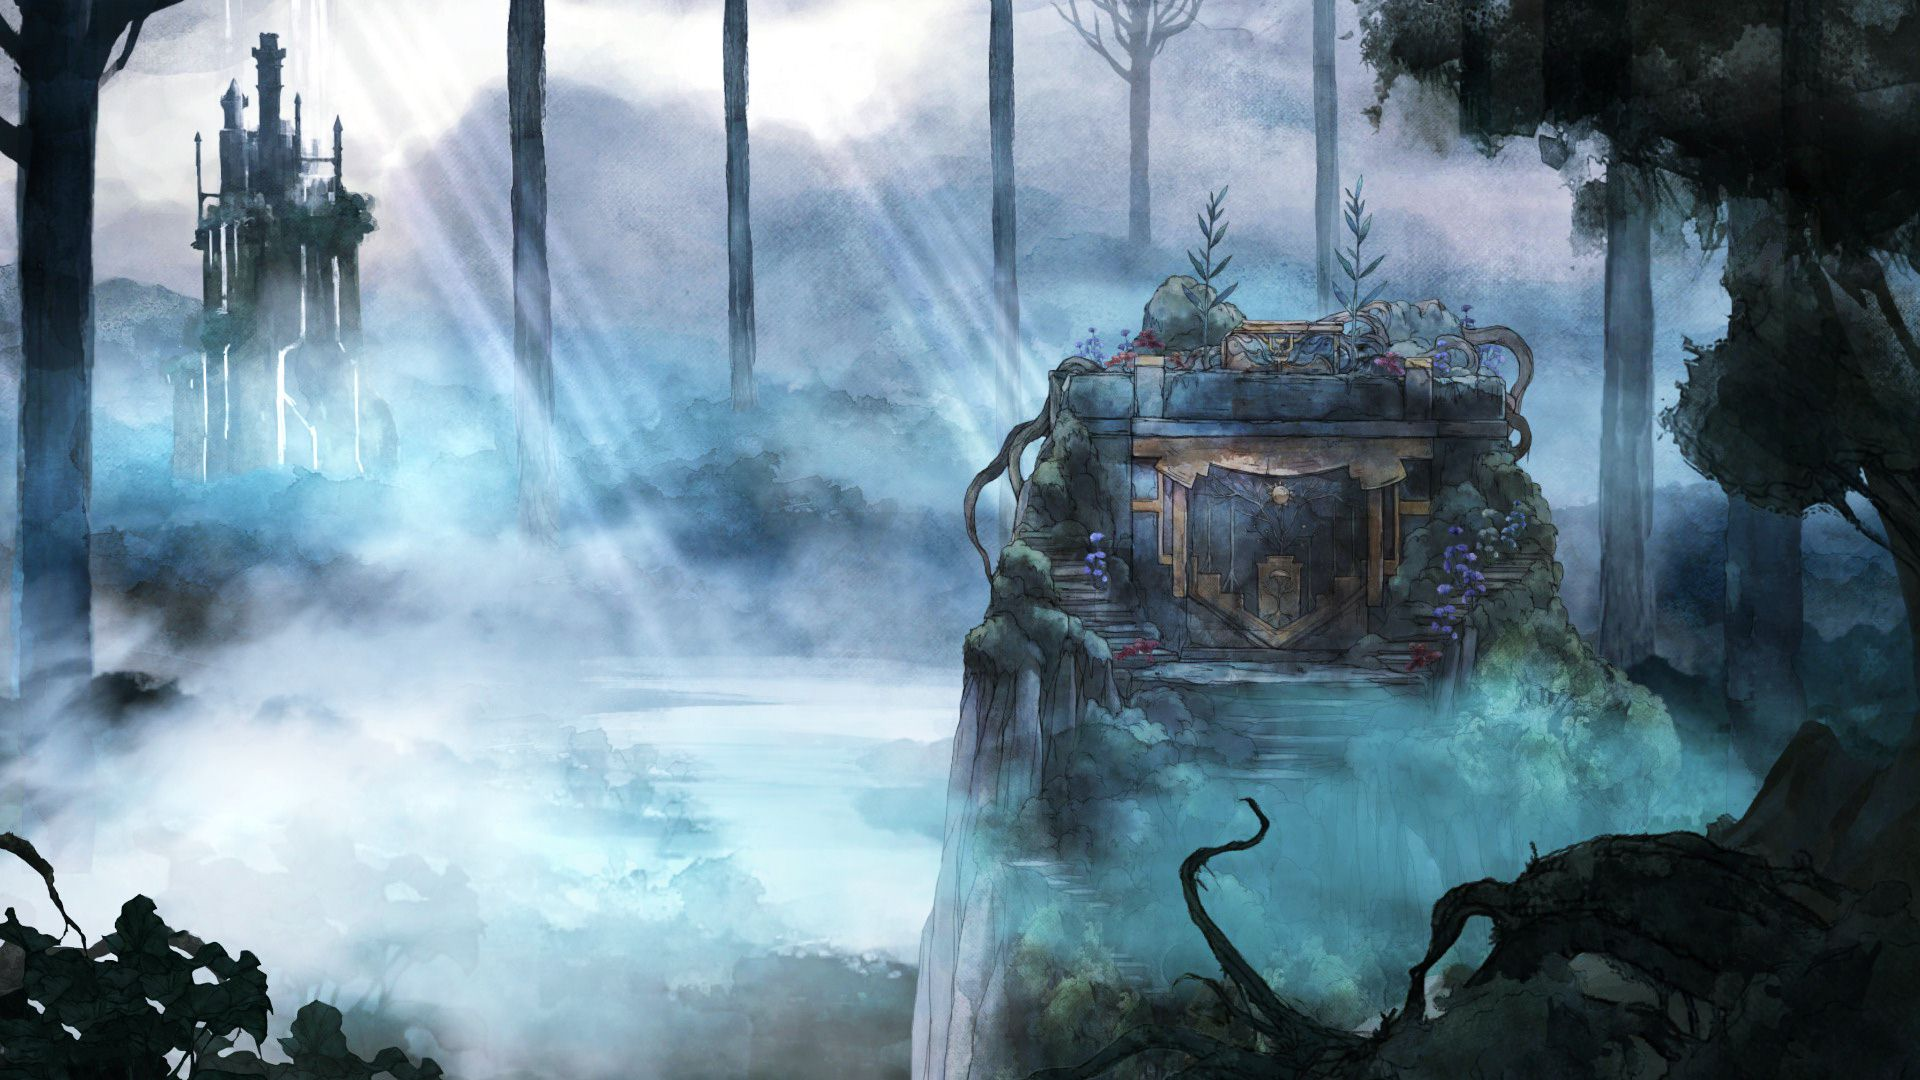 Hd Game Wallpaper 1920x1080 Child Of Light Wallpapers Archives Hdwallsource Com